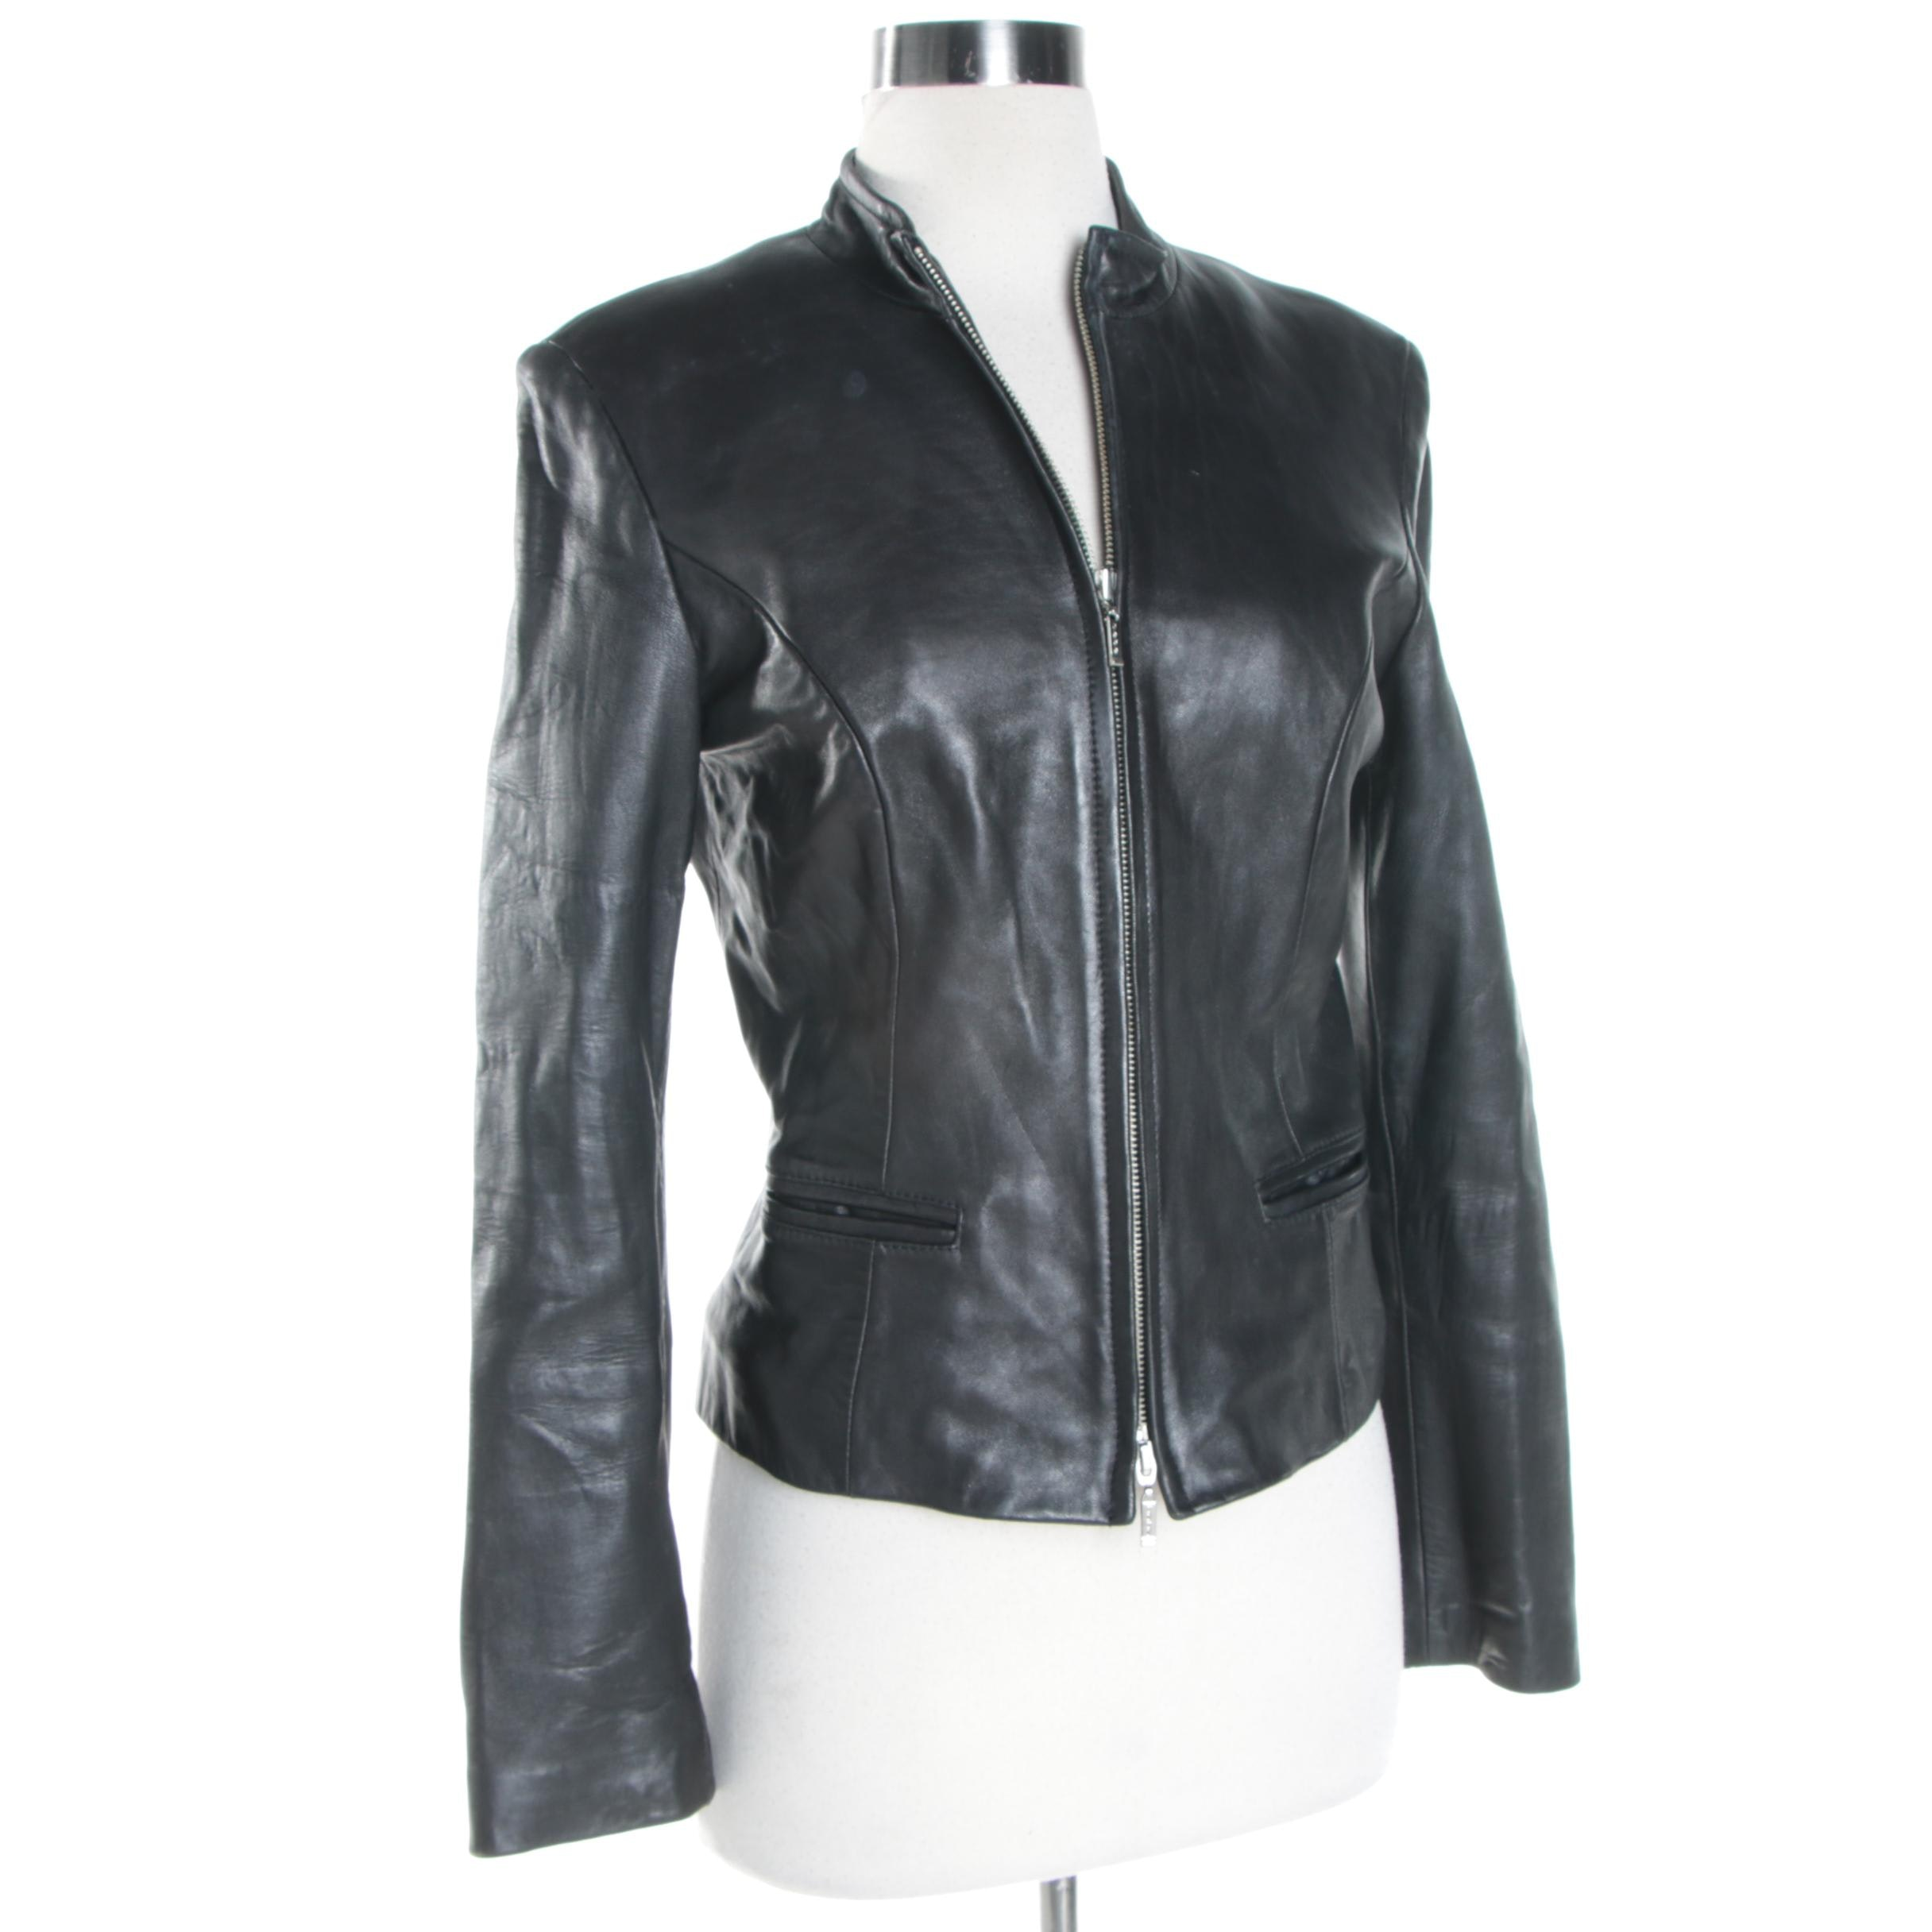 Women's Bebe Black Leather Jacket